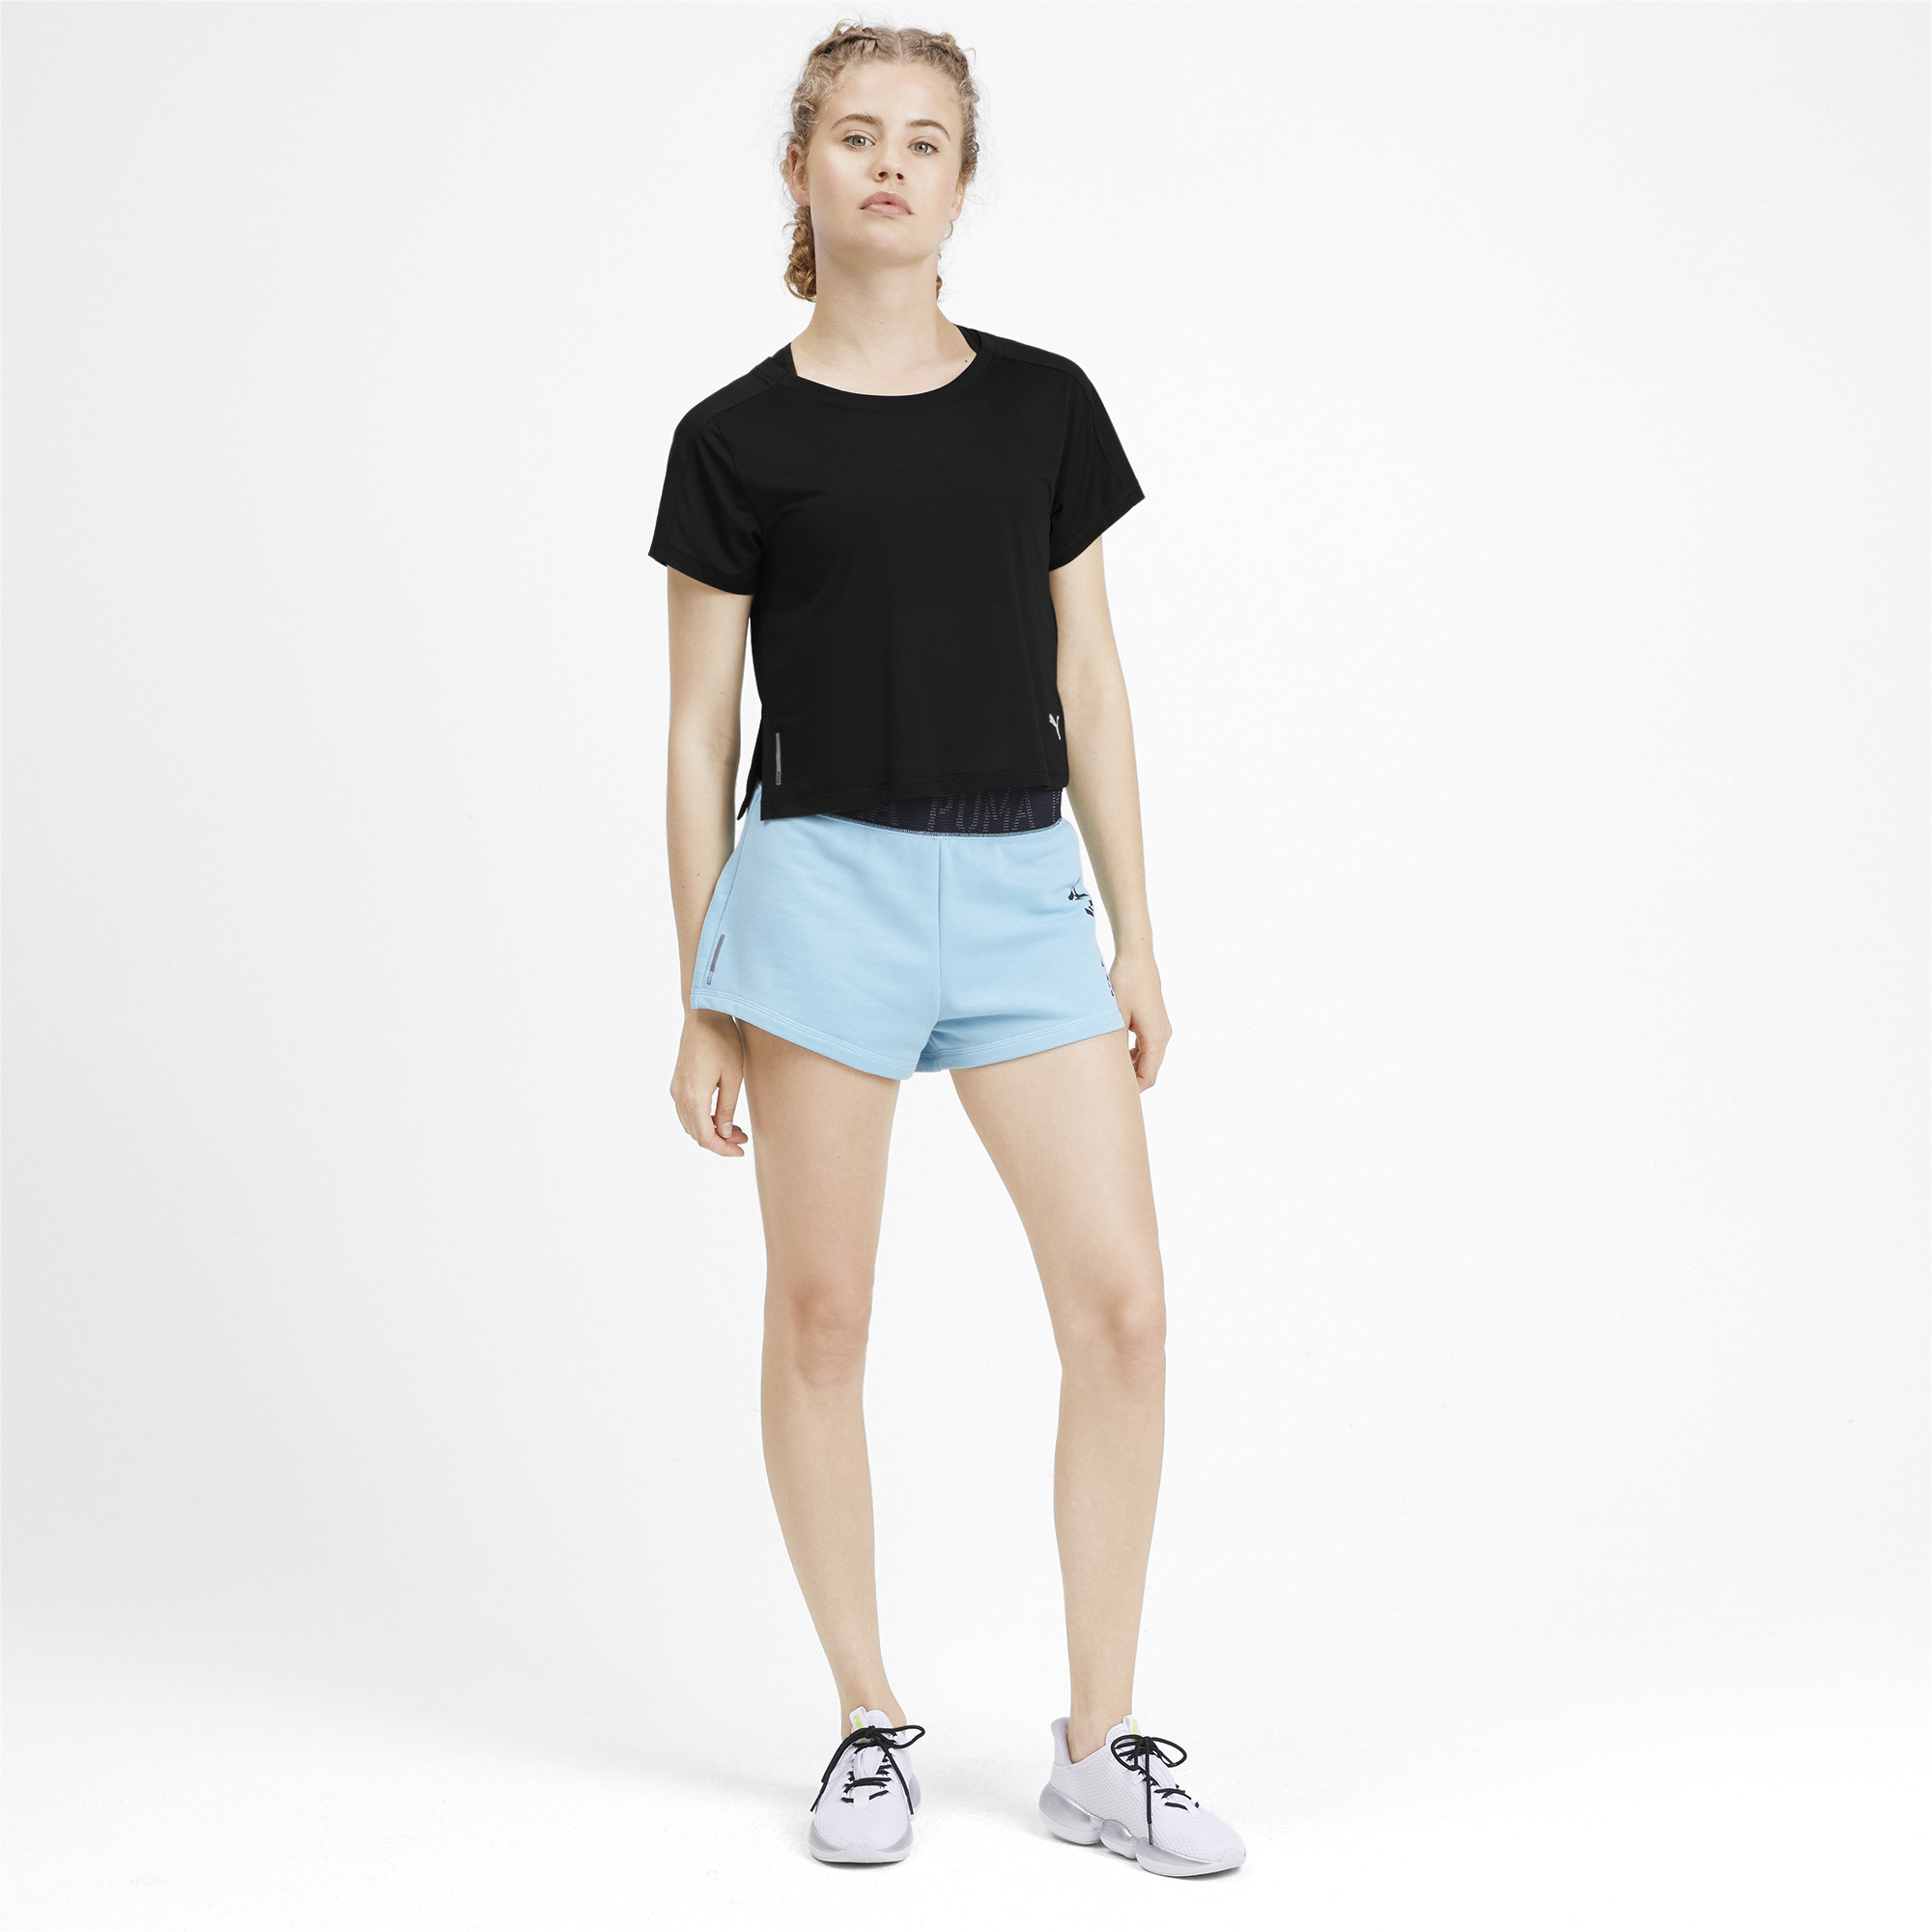 PUMA-Logo-Graphic-Women-039-s-Tee-Women-Tee-Training thumbnail 11